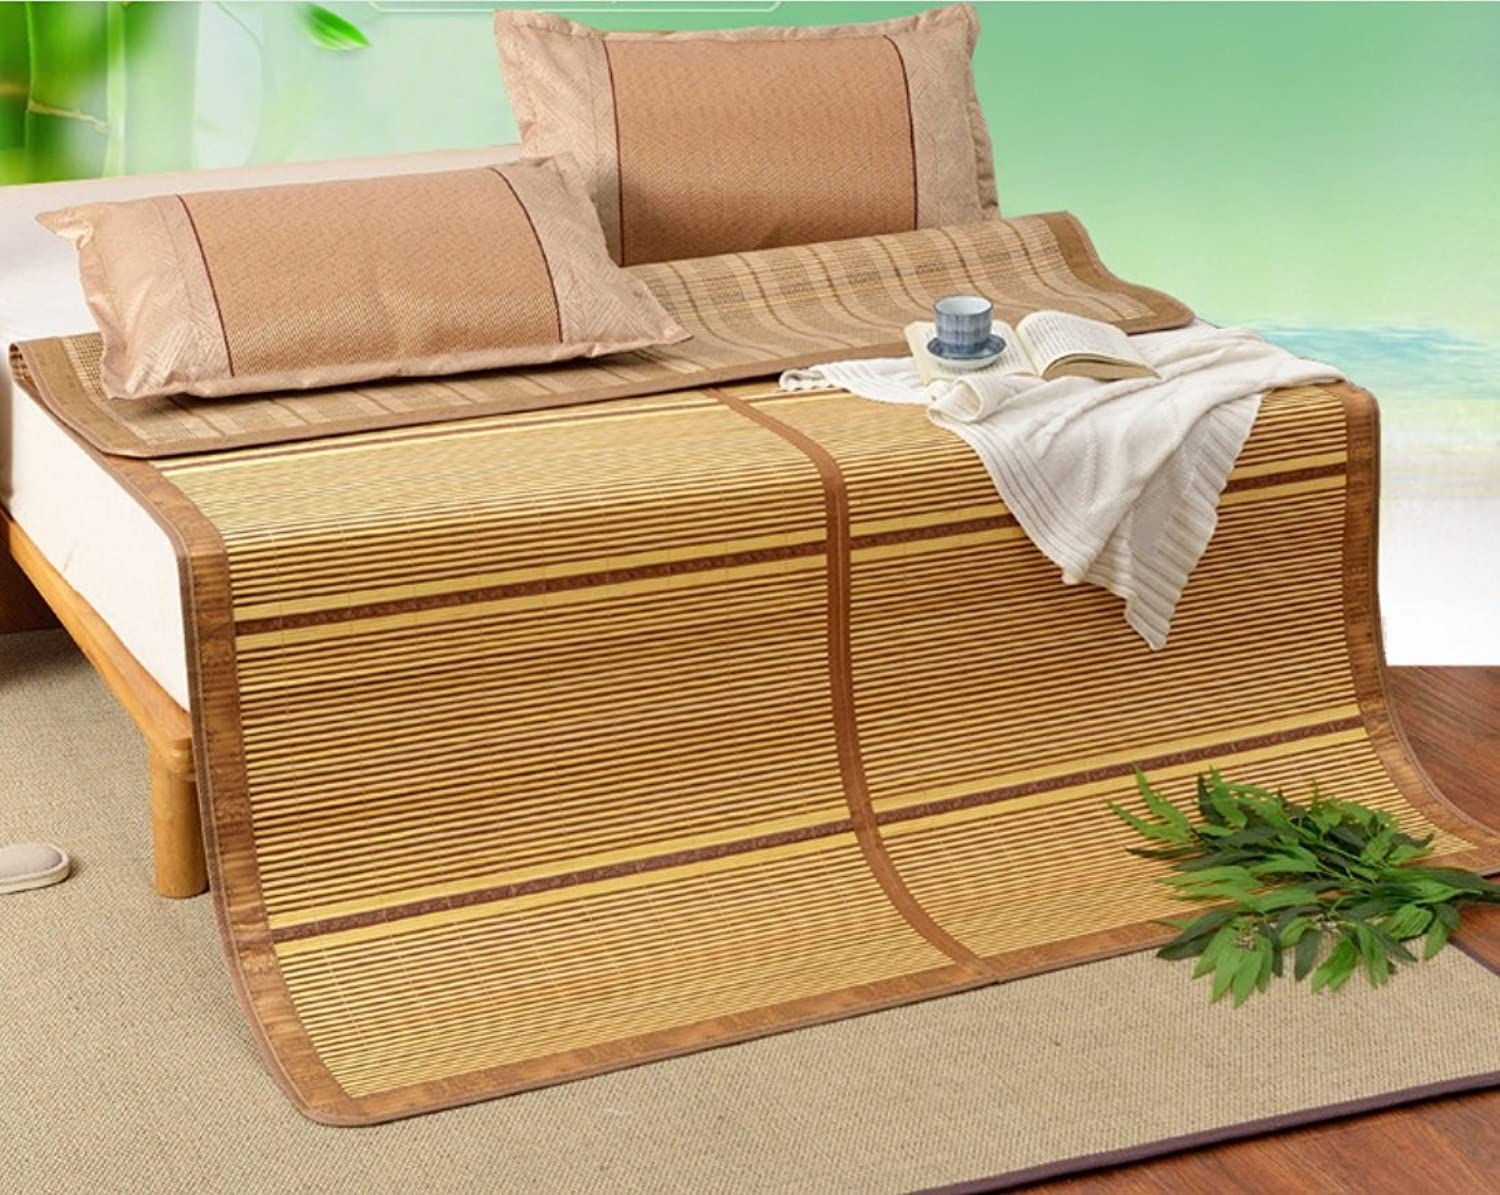 Summer Double-Sided Folding Bamboo Mat 0.9 Meters Student 1.8 Meters Mat 1.5 Meters Bamboo Mat ZXCV (Size   90  180CM)